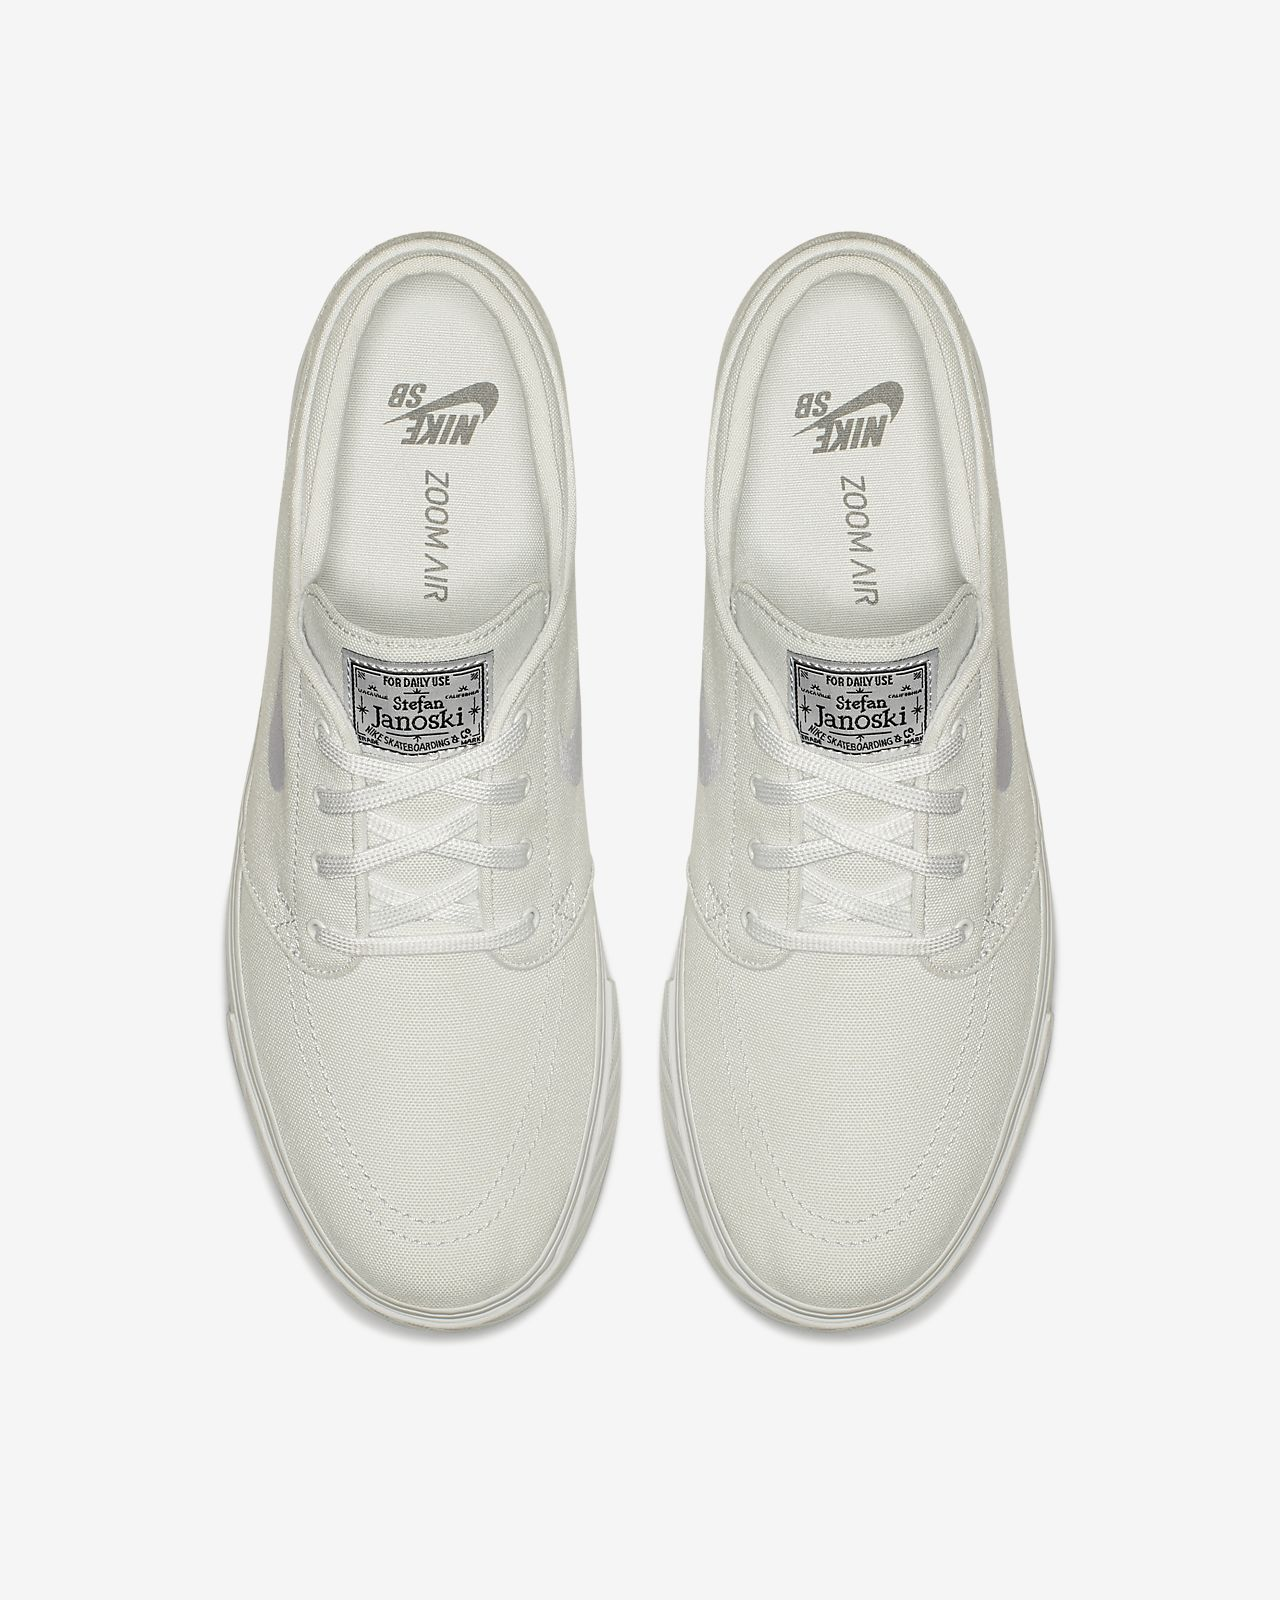 buy online 1d32c b3d17 ... Nike SB Zoom Stefan Janoski Canvas Men s Skate Shoe